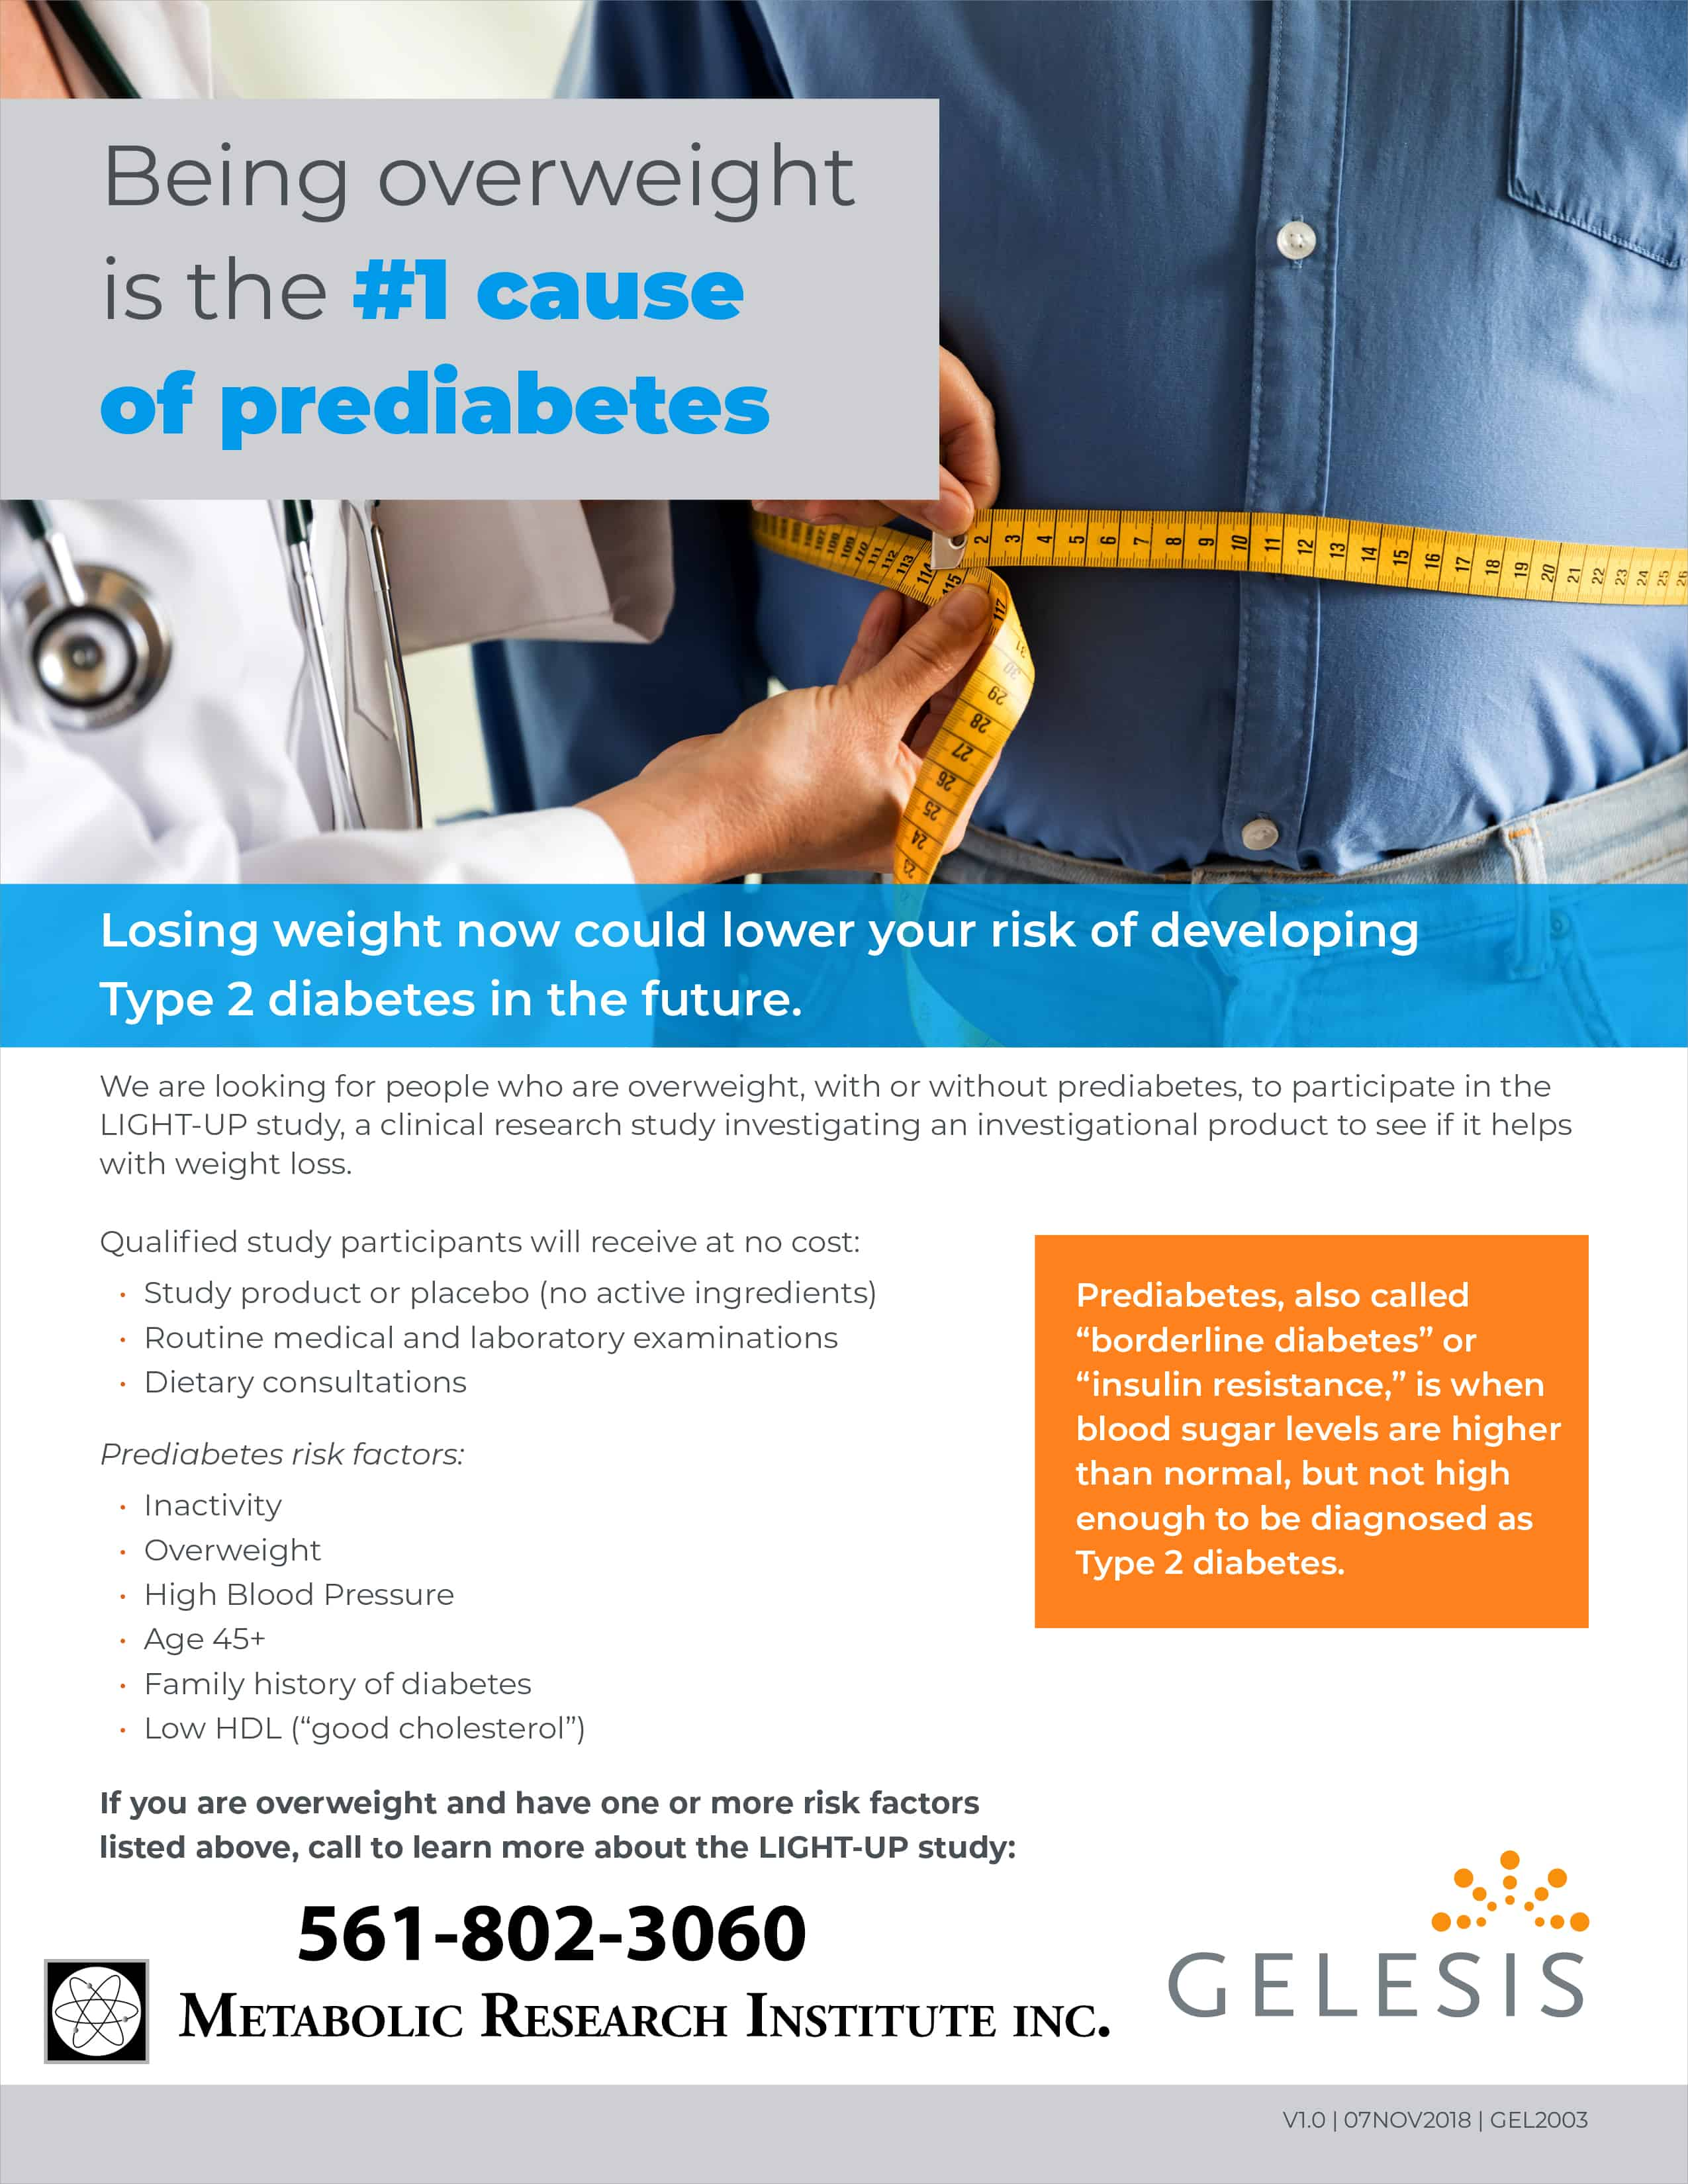 Metabolic Research Institute in West Palm Beach Florida is conducting a clinical research diabetes weight loss study for people with Type 2 Diabetes or Prediabetes.